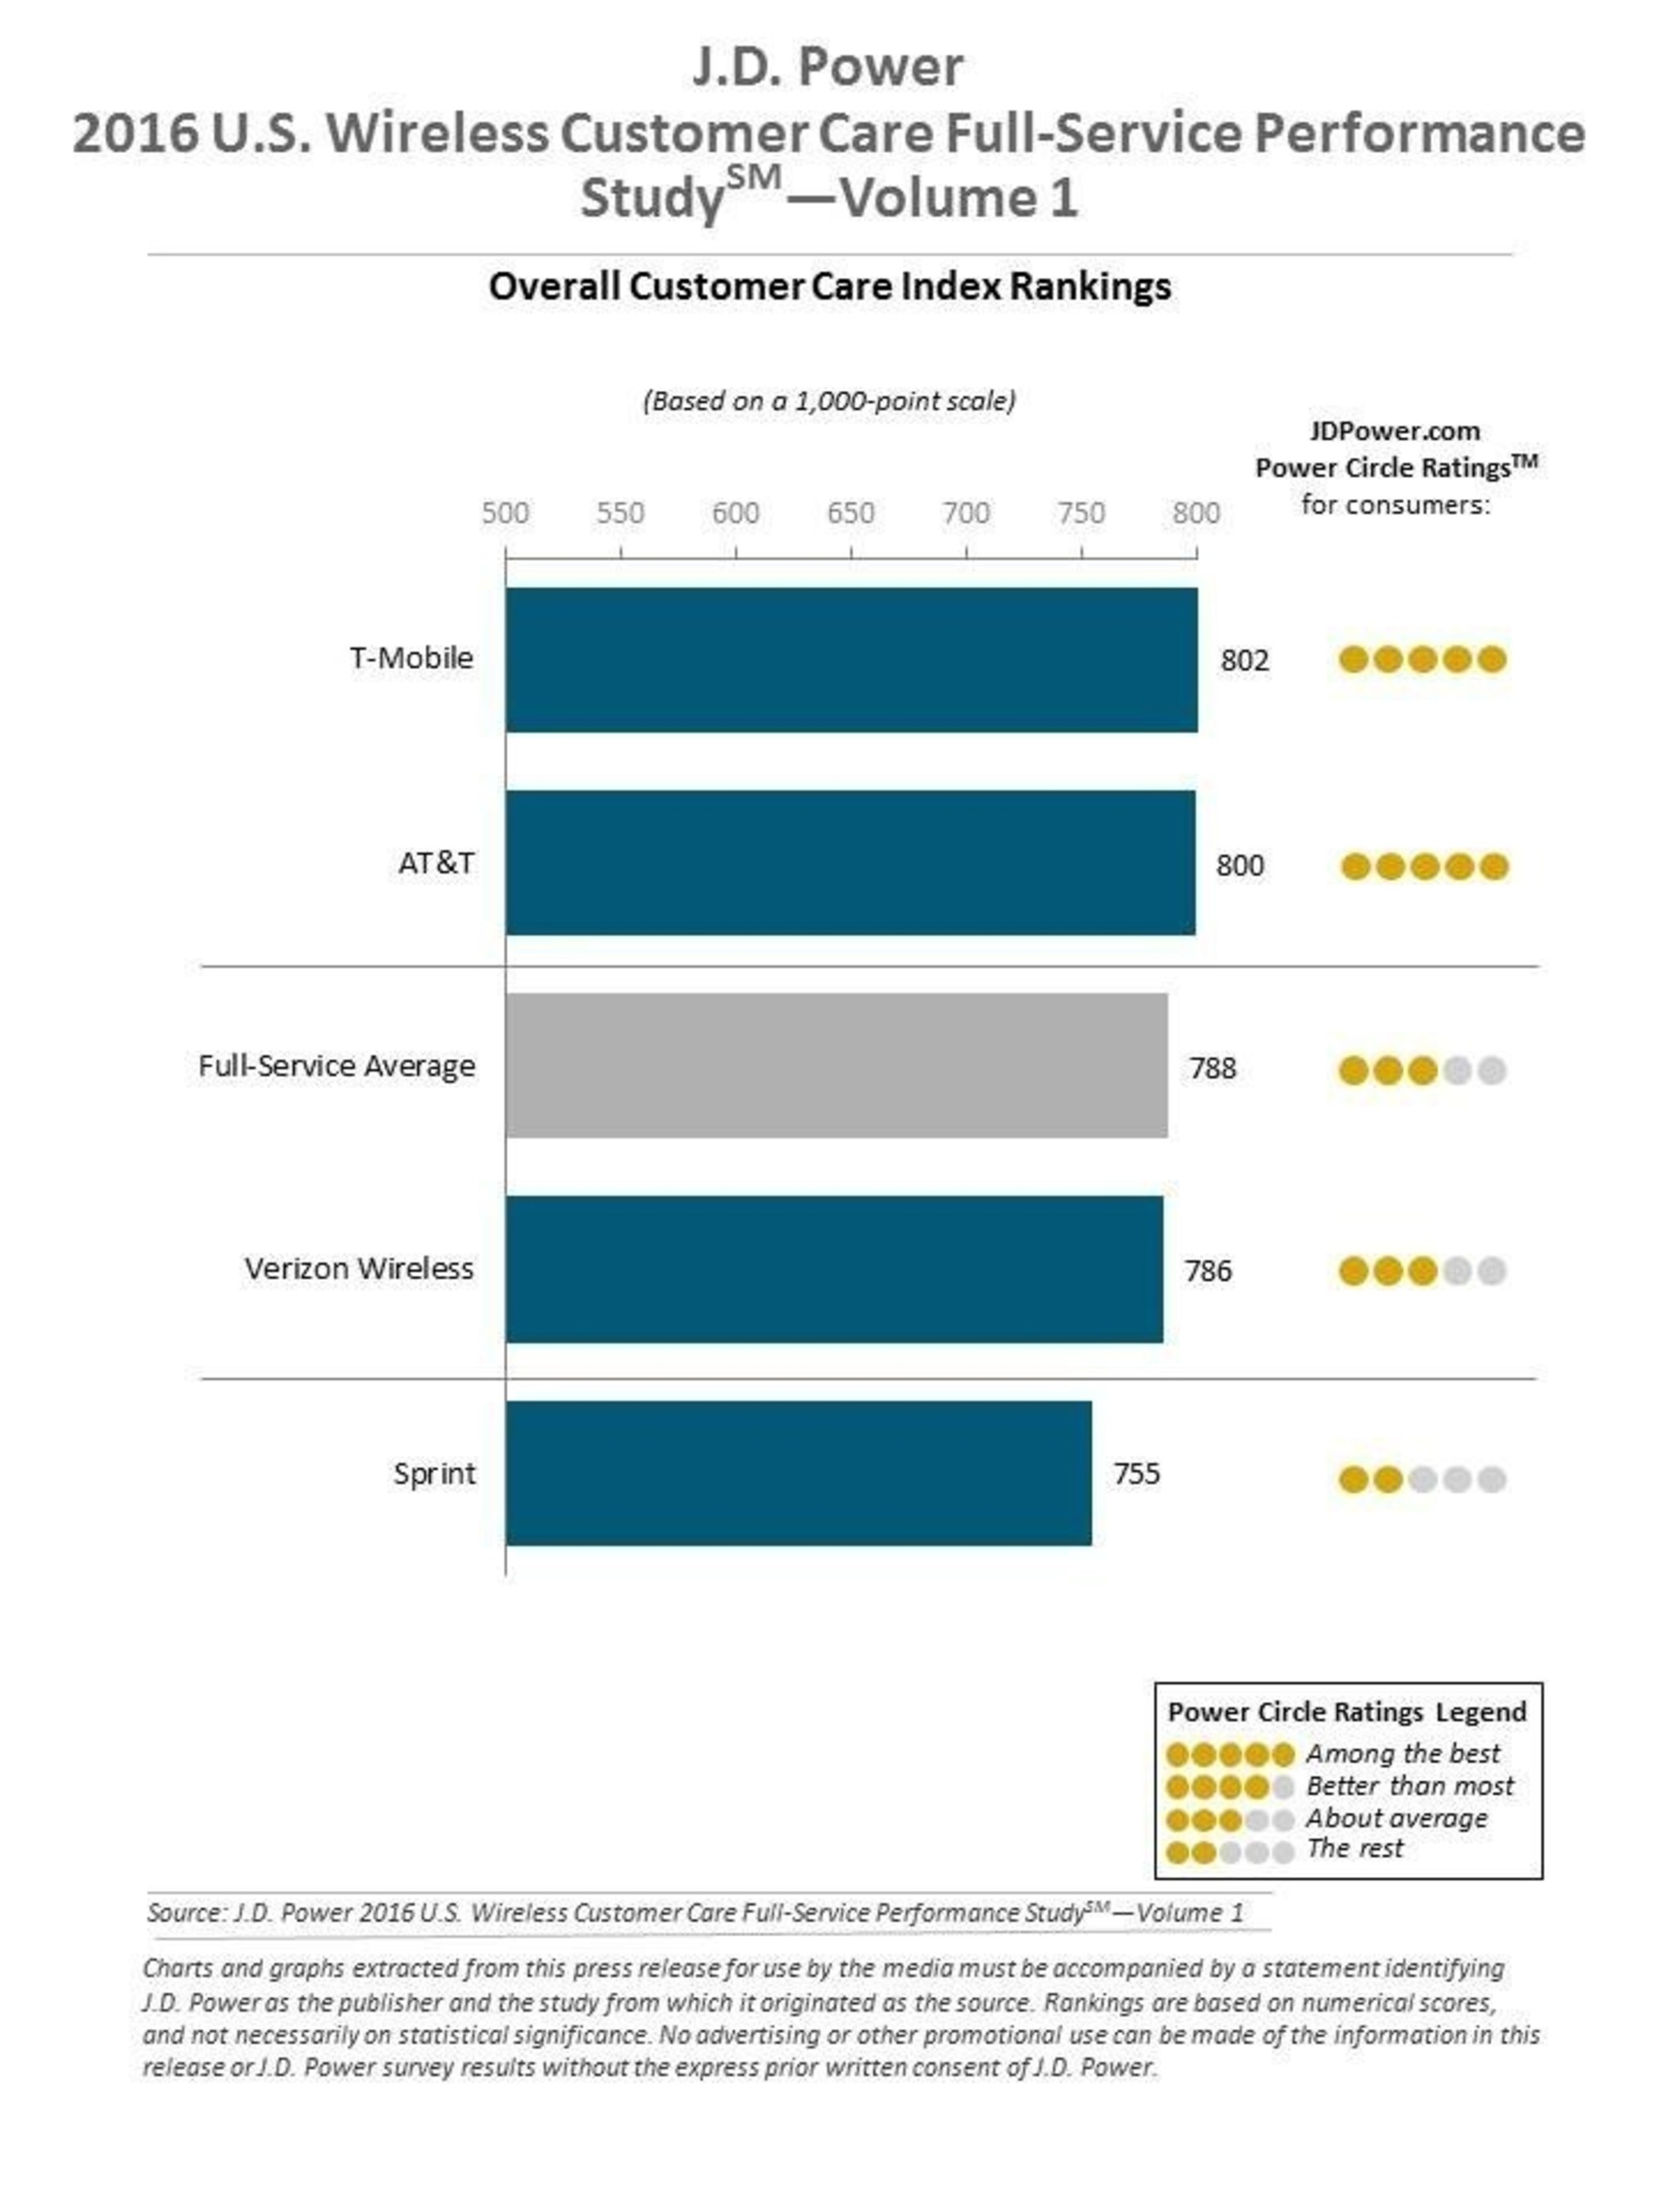 Overall Satisfaction with Wireless Carrier Customer Care ...